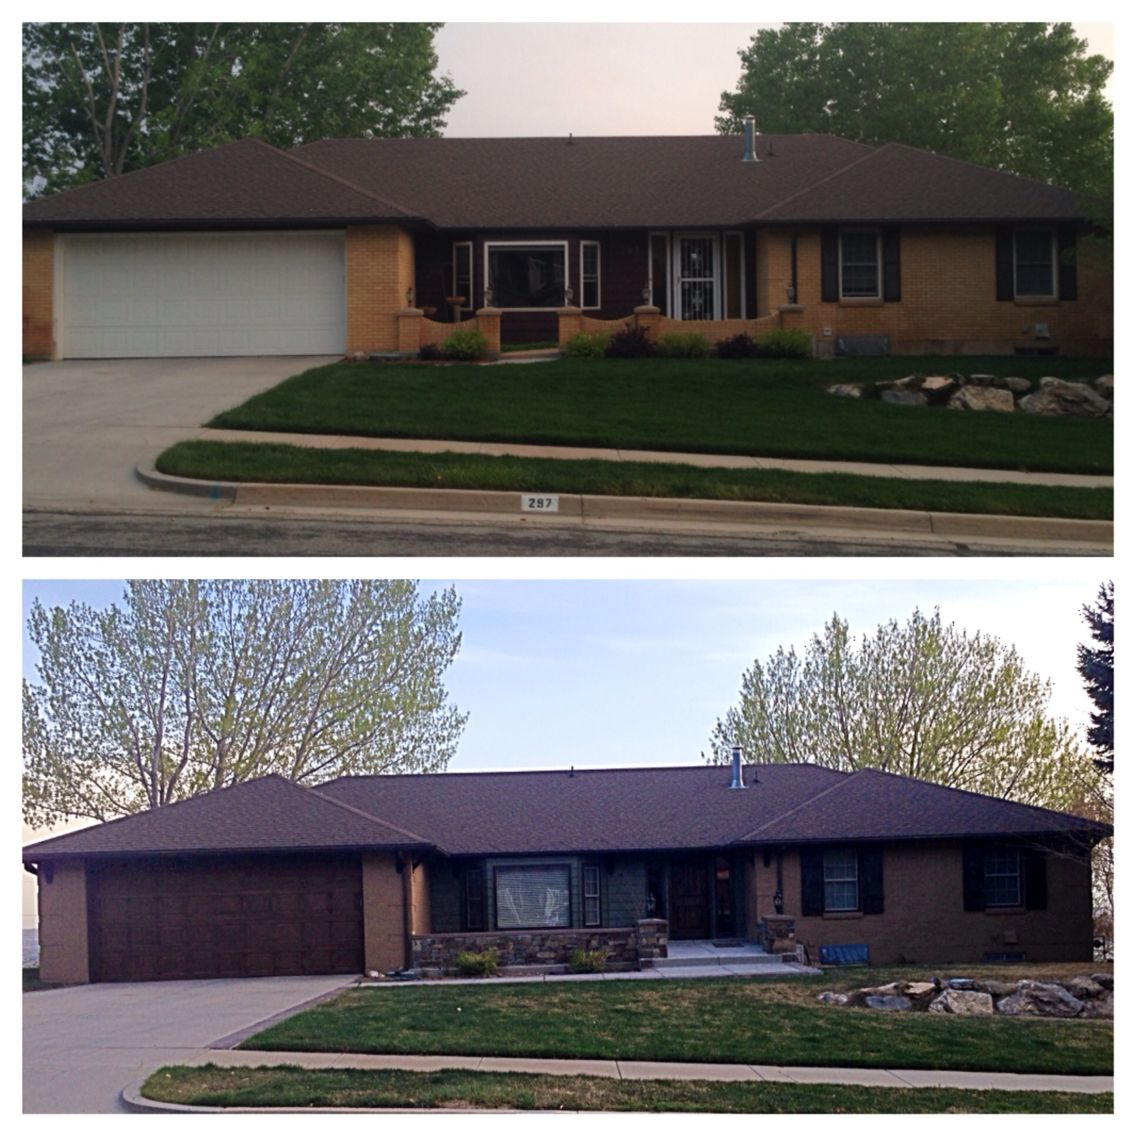 70s Home Exterior Remodel: My 70s Ranch Remodel.